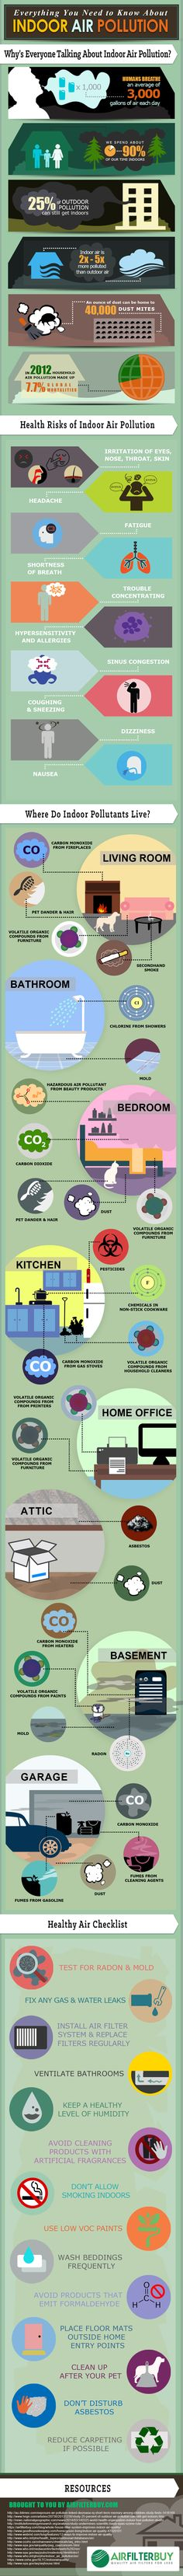 Condo Blues: Everything You Need to Know About Indoor Air Pollution but Didn't Know You Should Ask